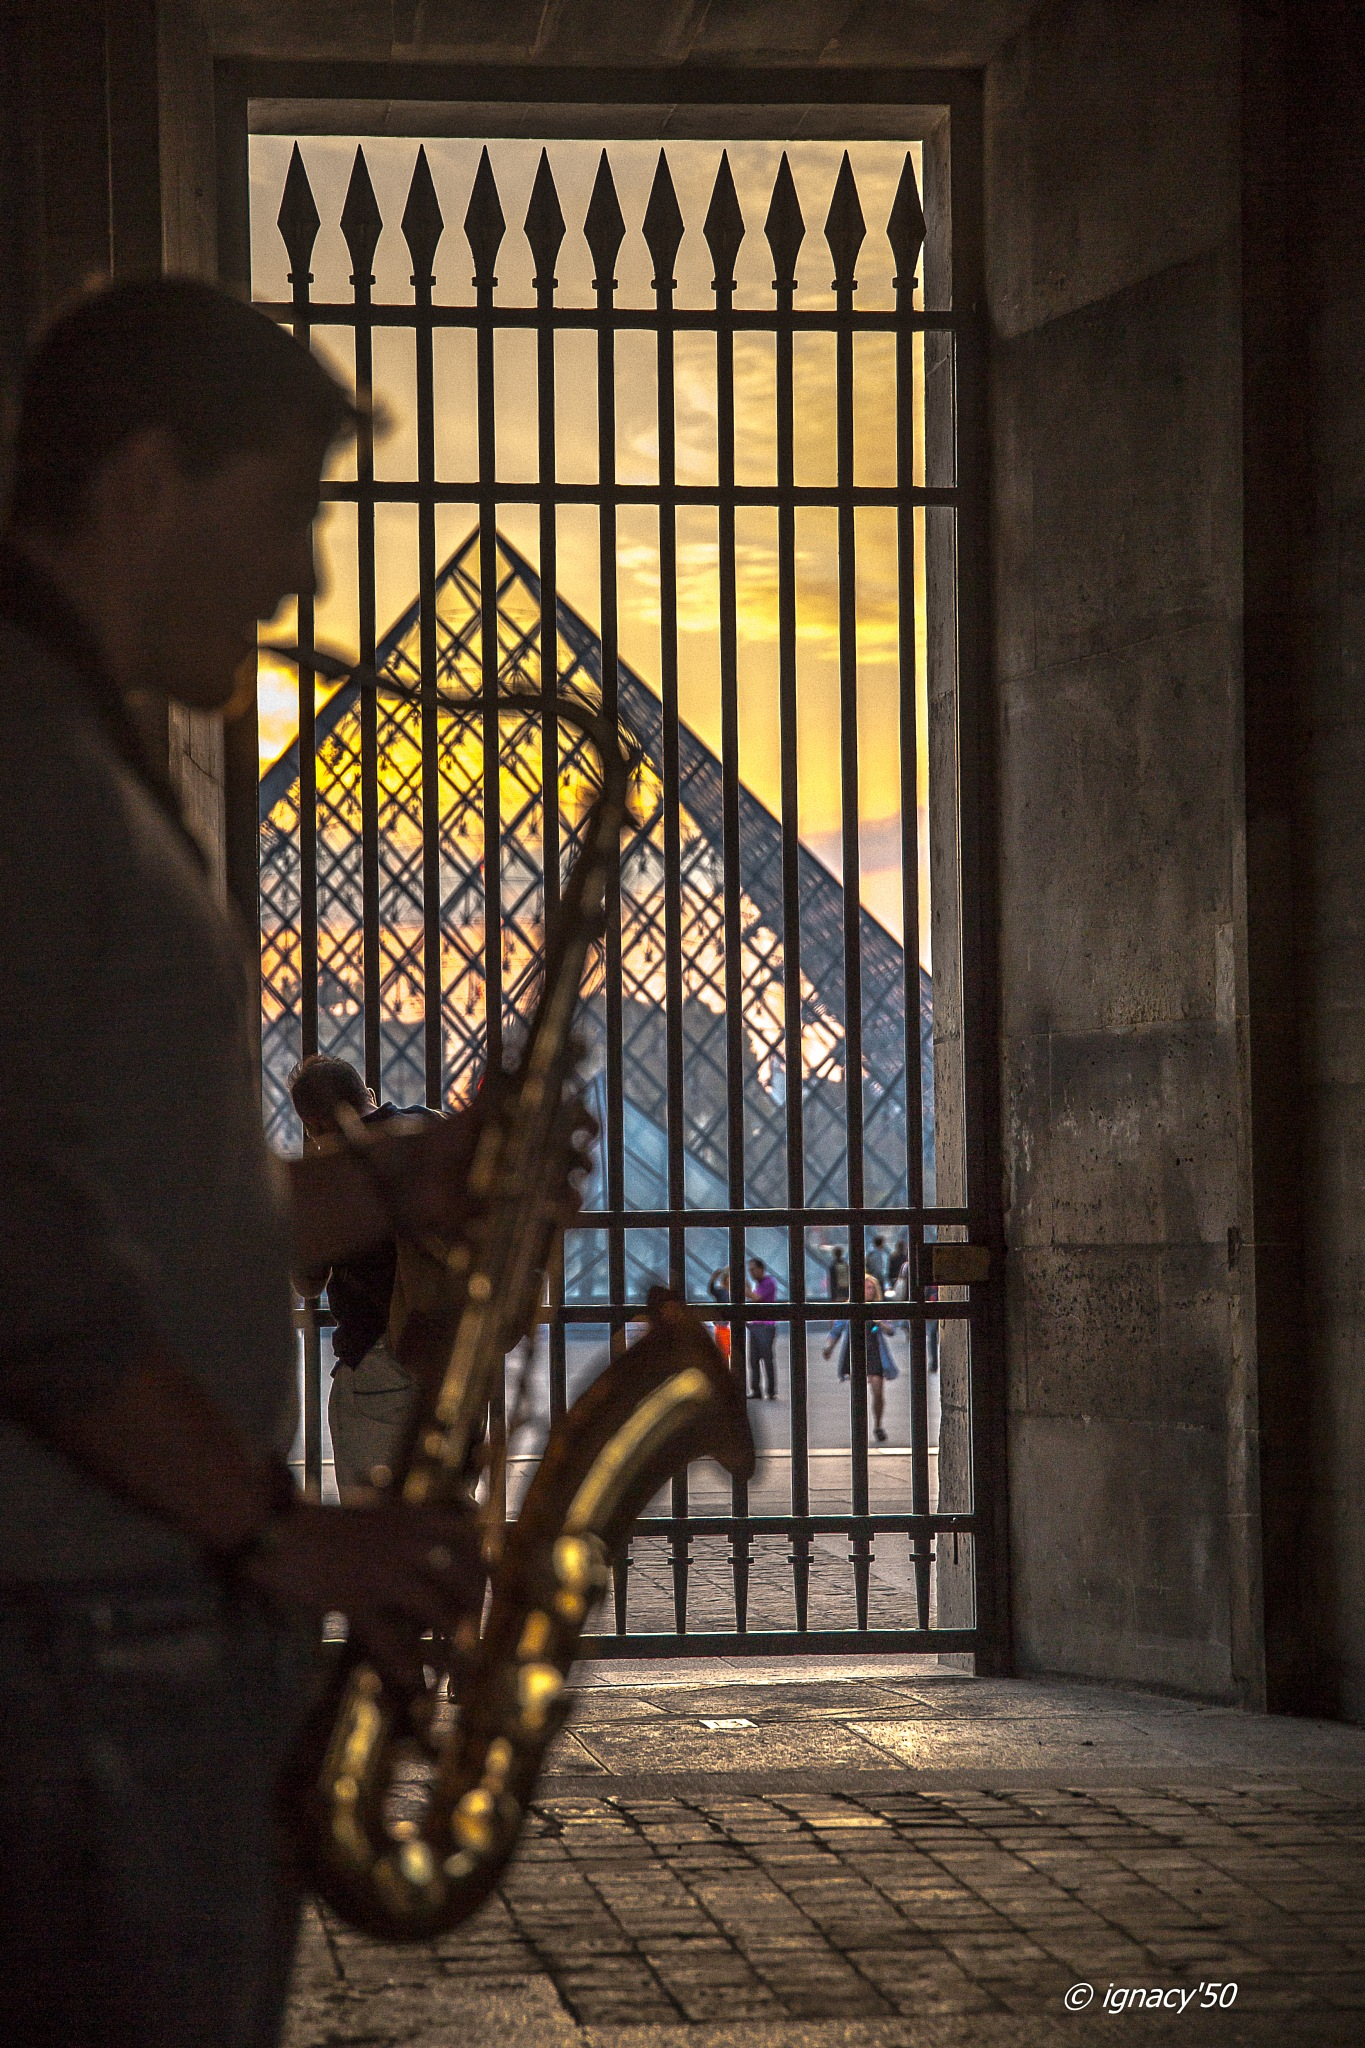 a short story about the sound of Jazz in the Louvre by ignacy50